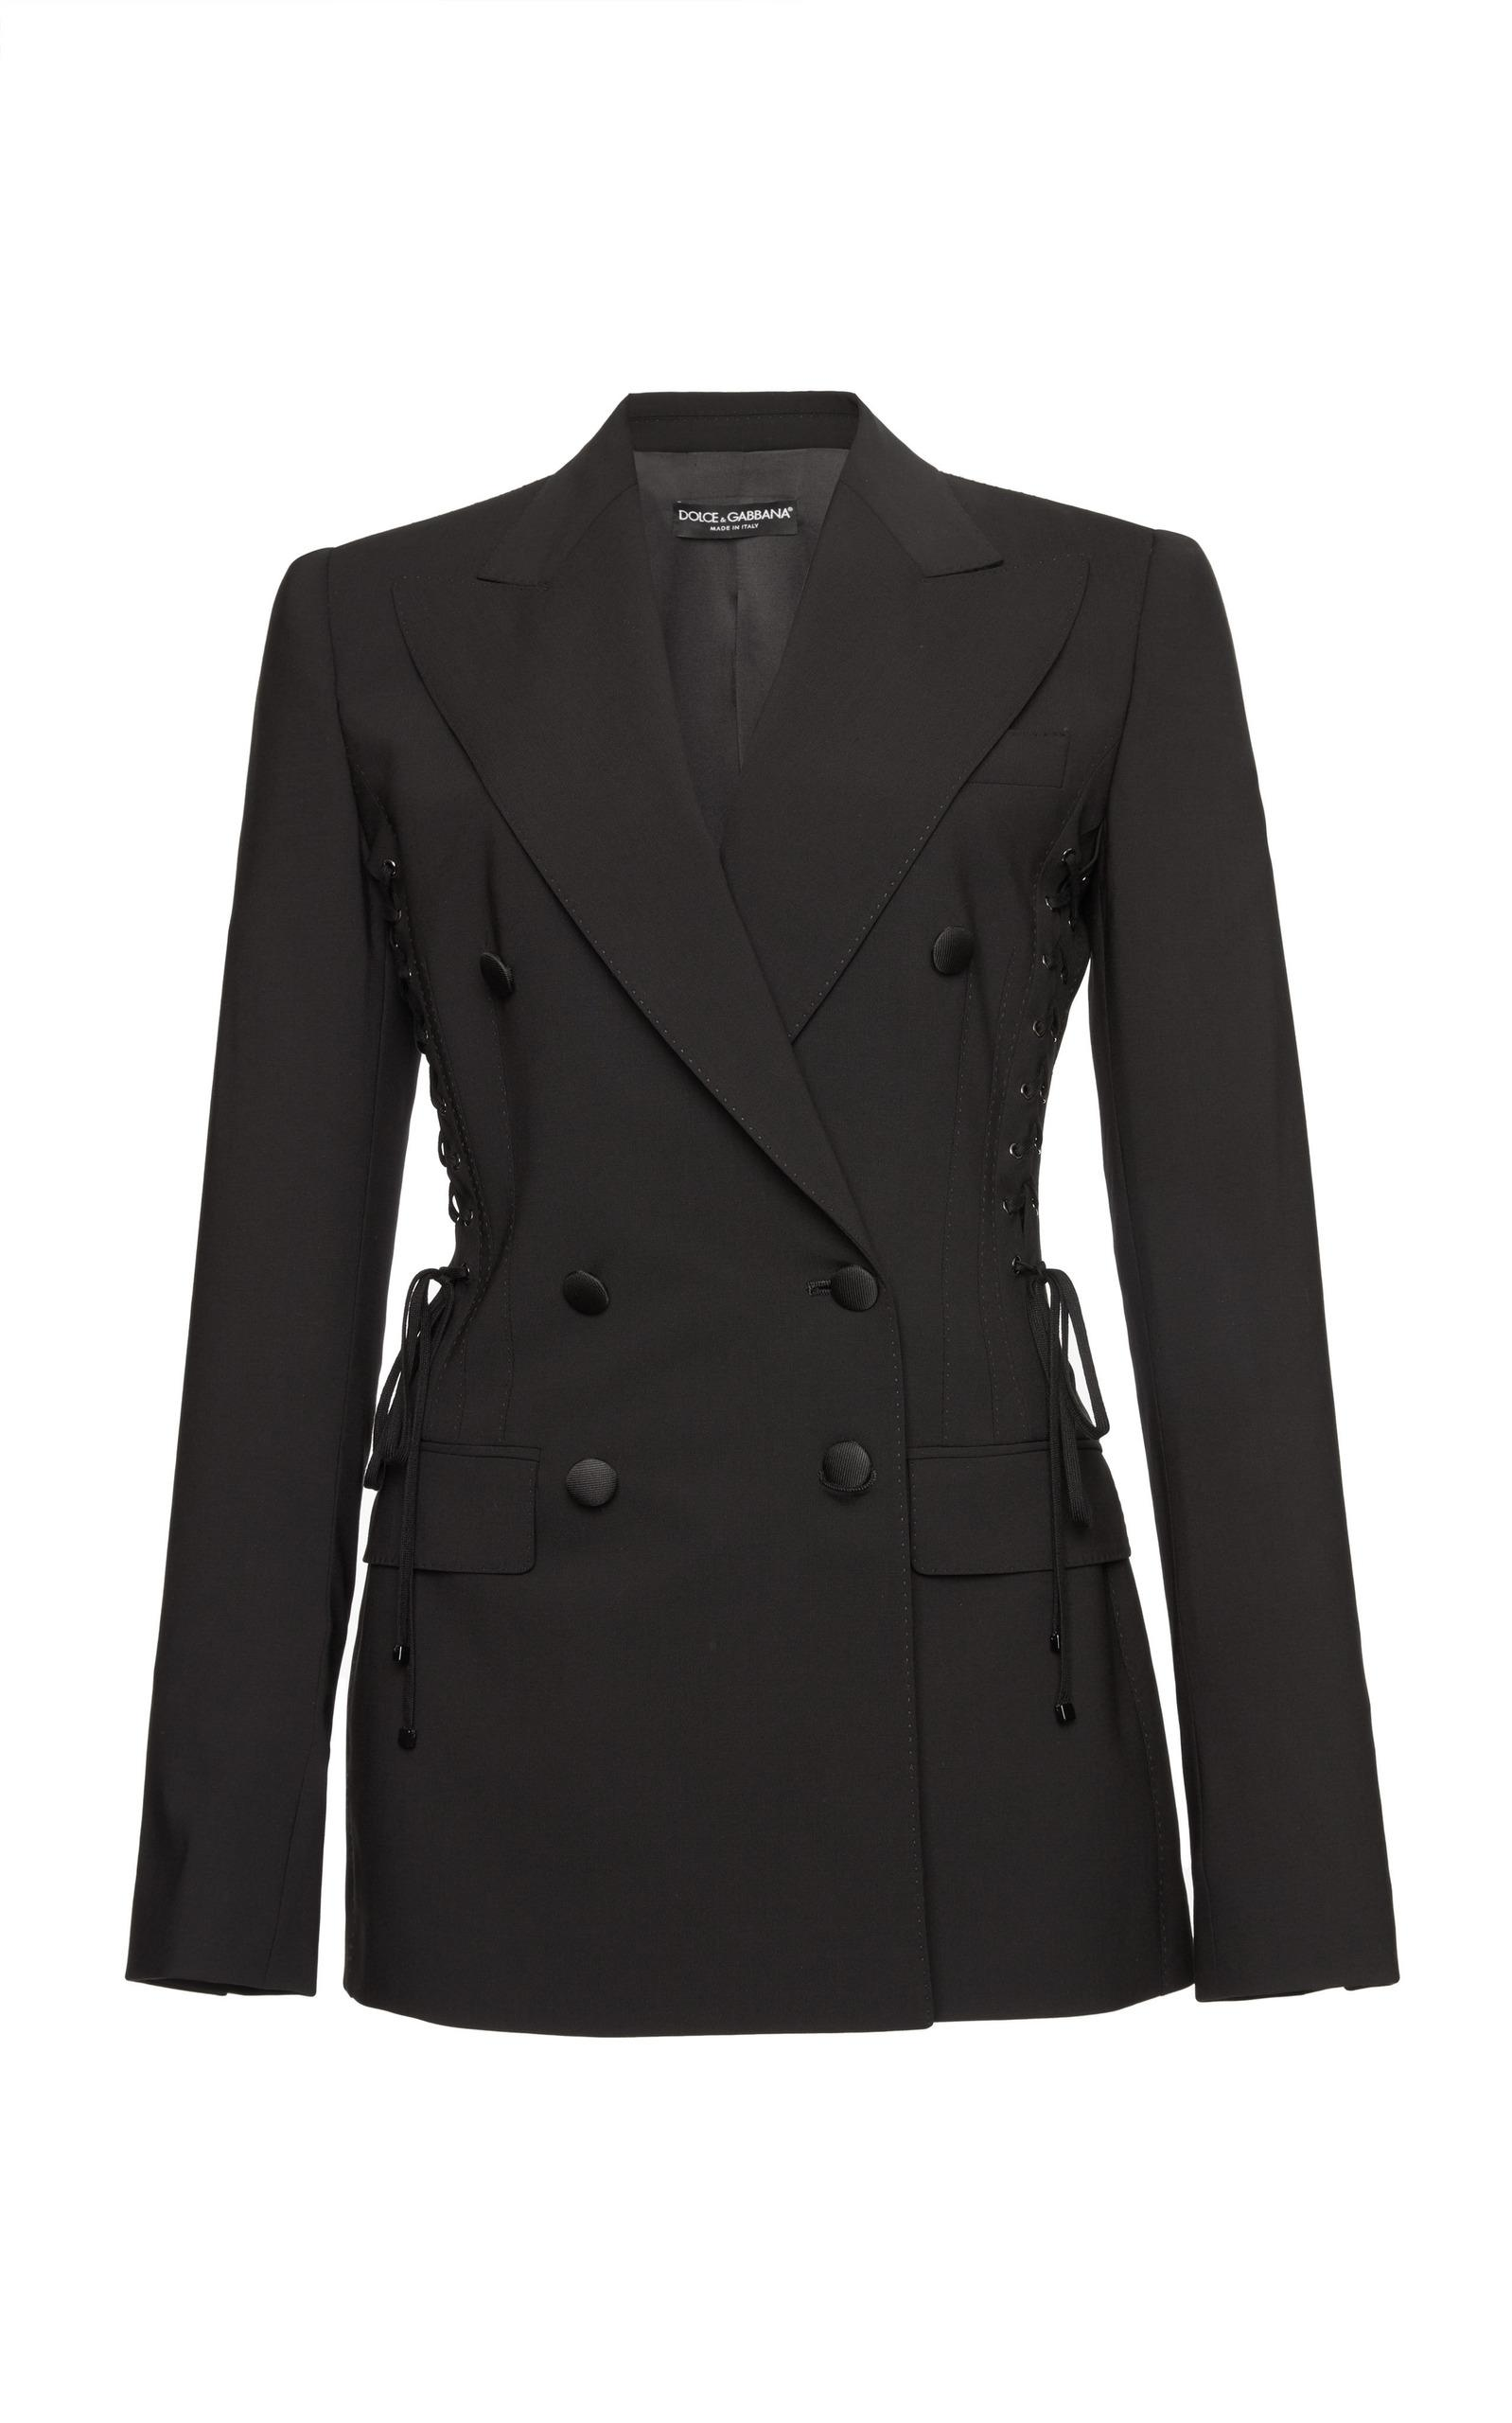 Dolce & Gabbana Double Breasted Jacket In Black